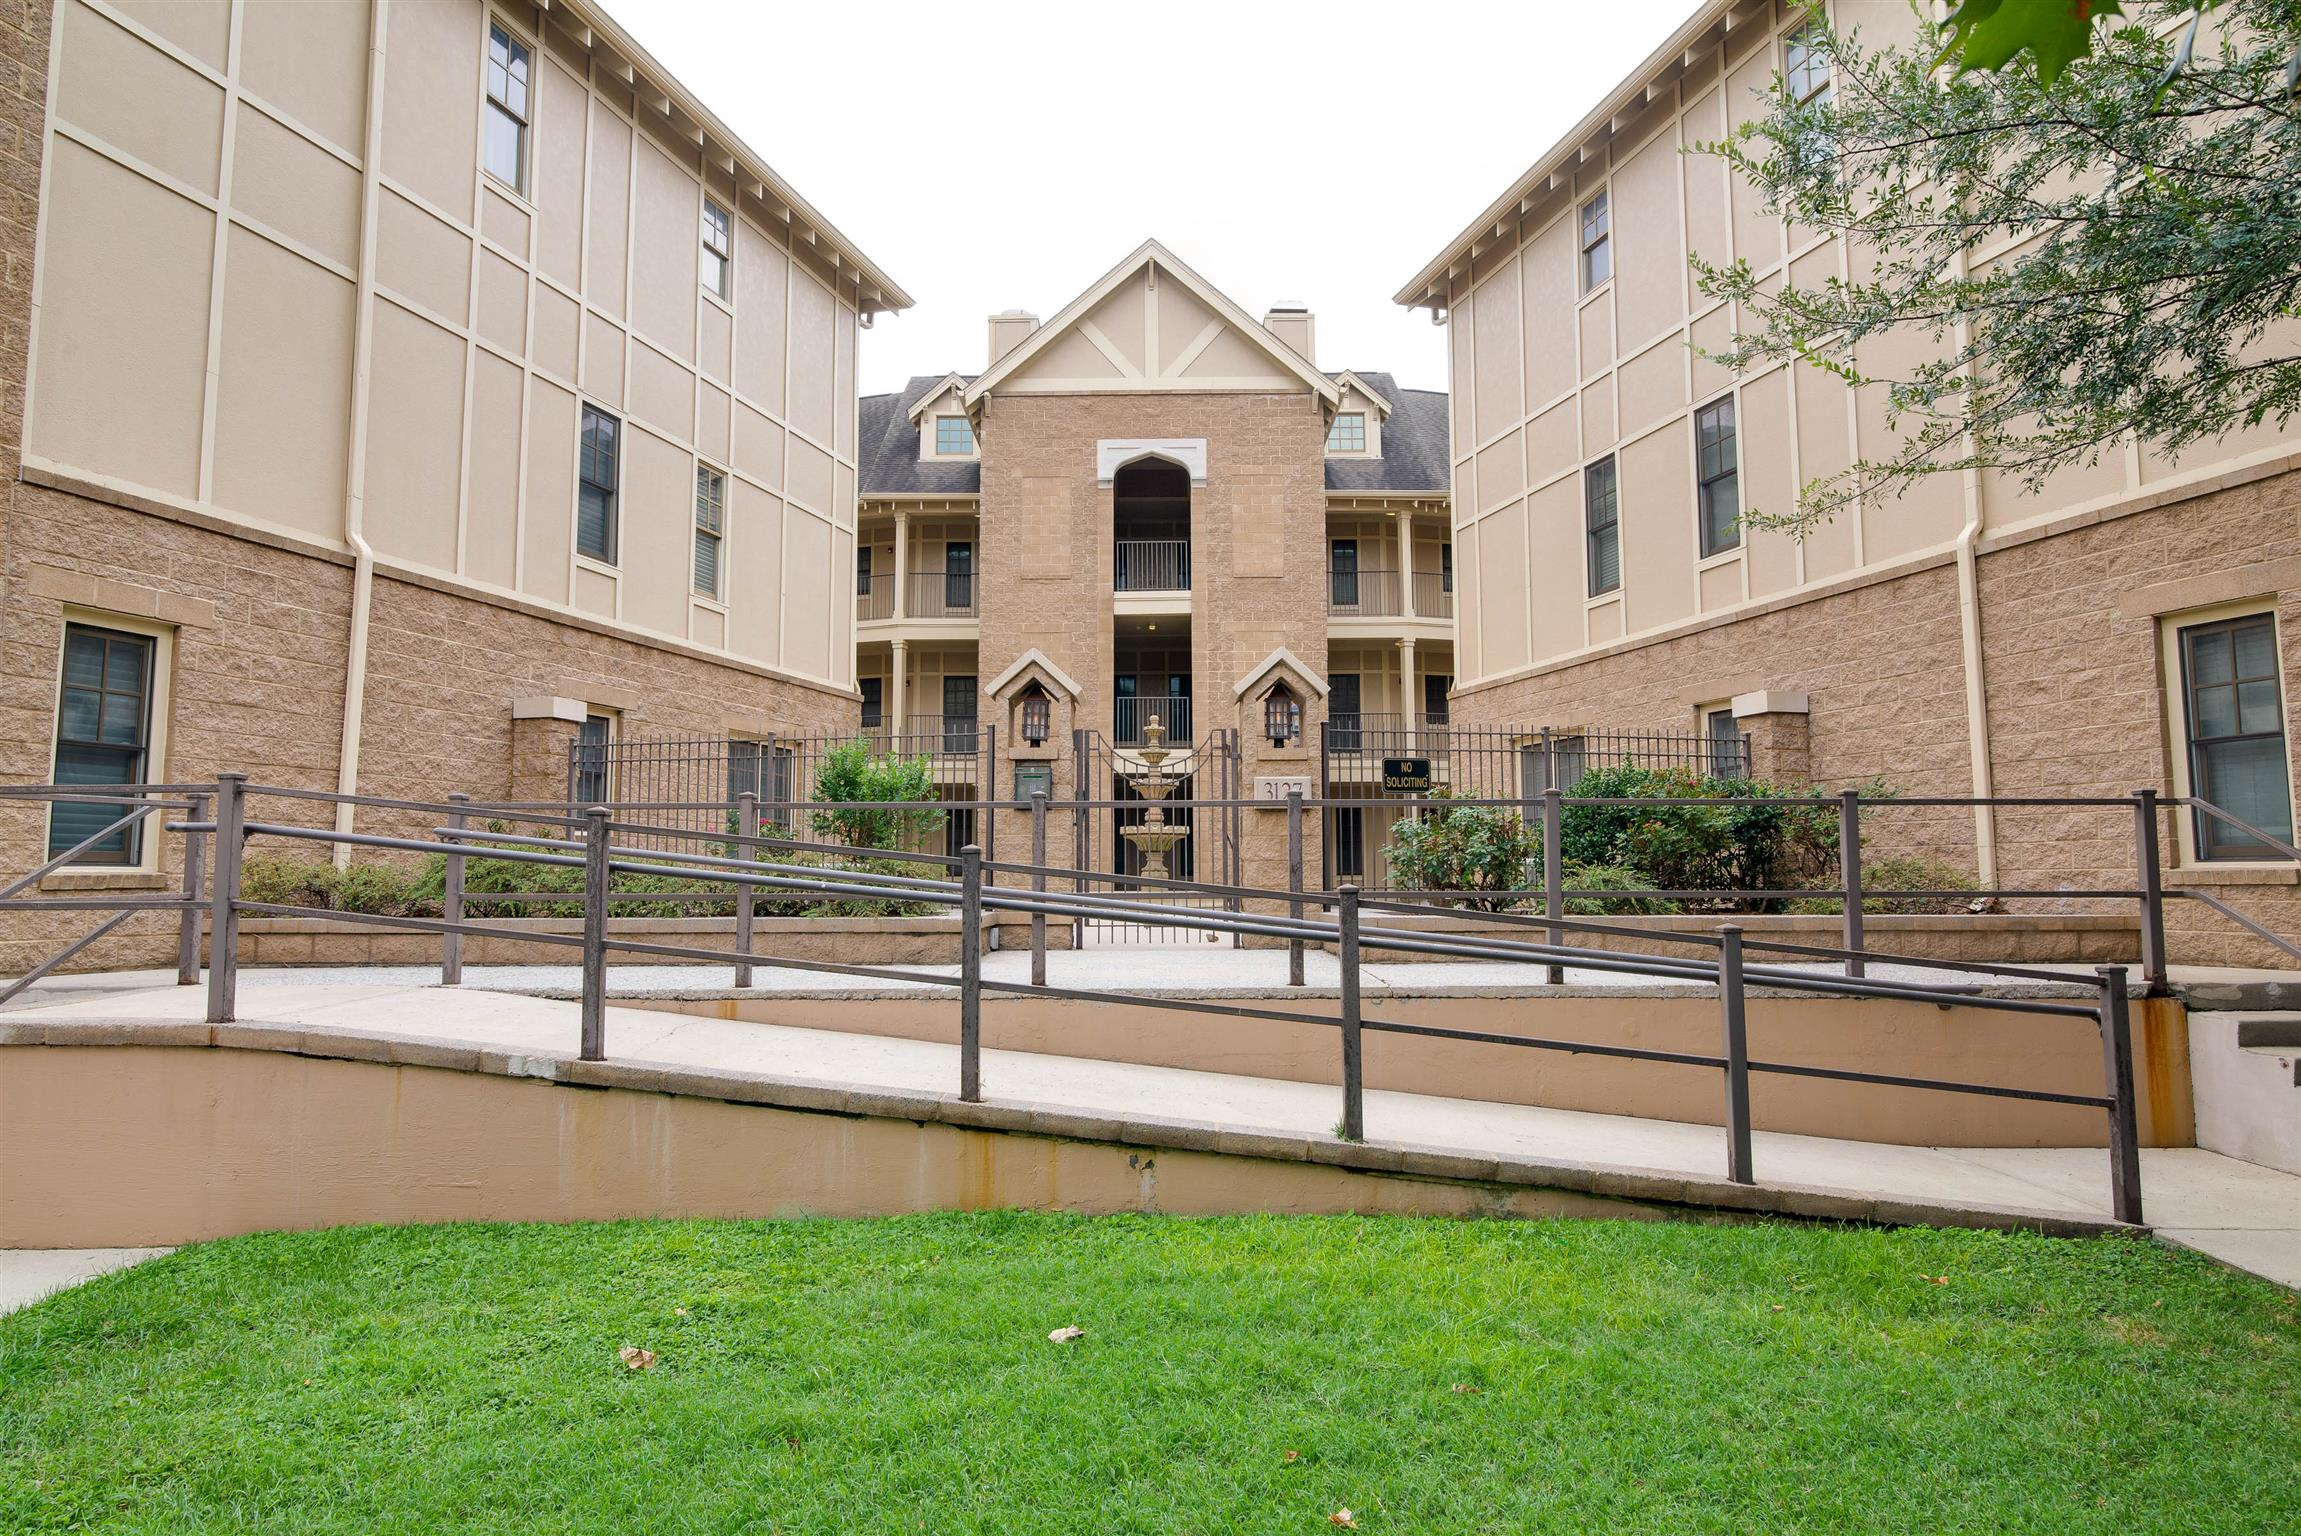 3127 Long Blvd Apt 307, Nashville - Midtown in Davidson County County, TN 37203 Home for Sale